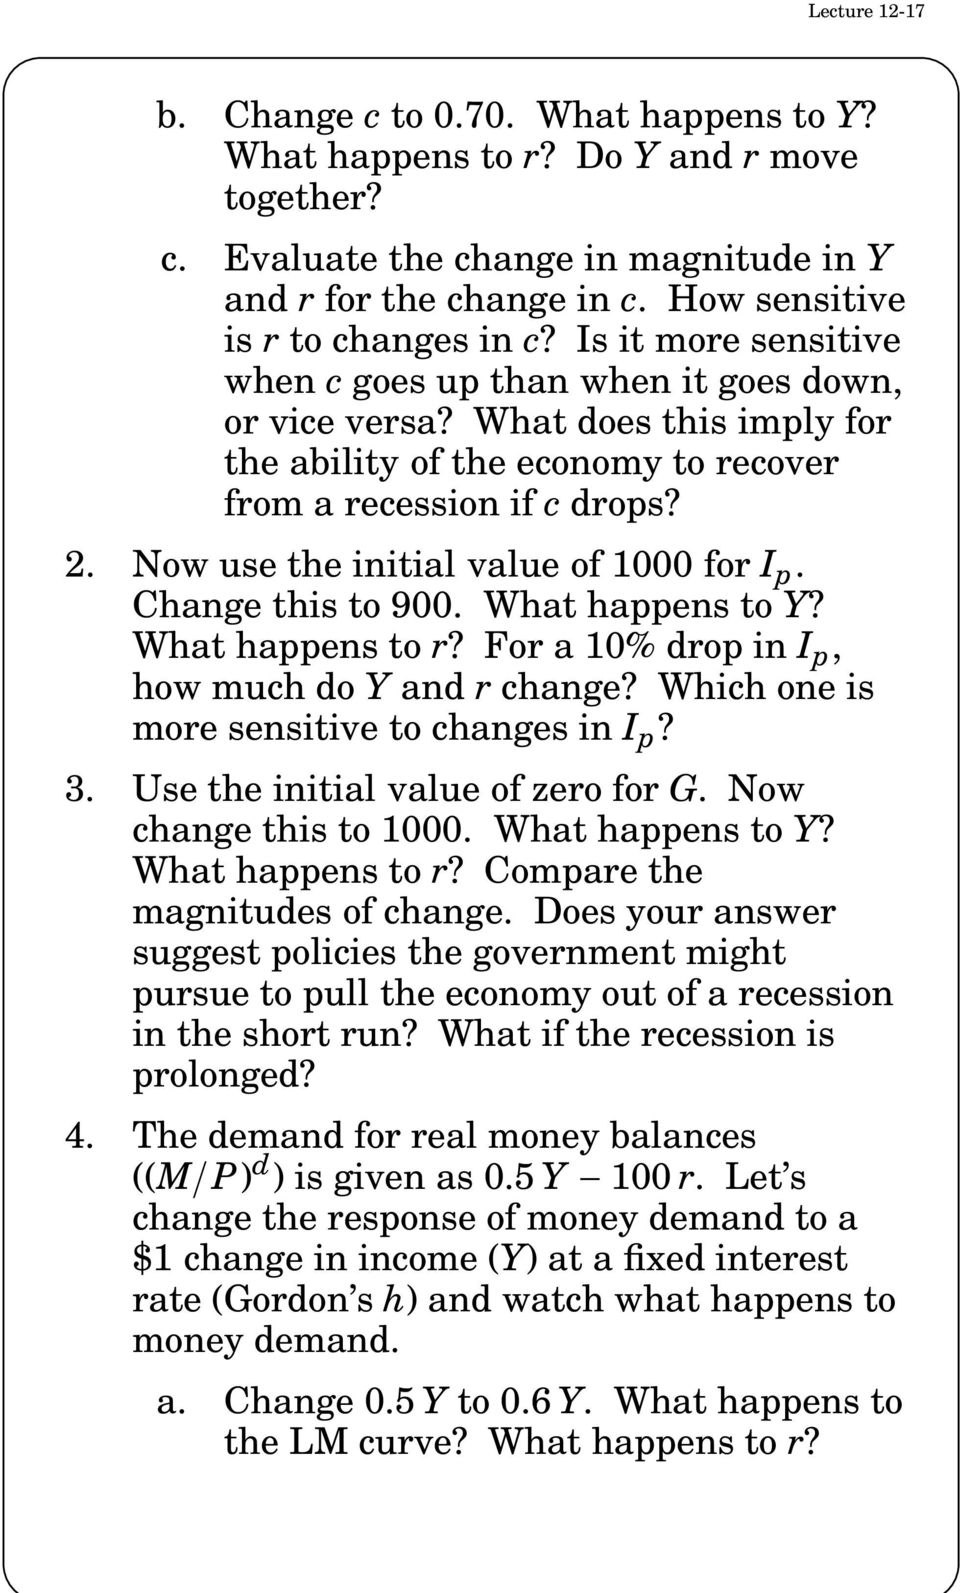 What does this imply for the ability of the economy to recover from a recession if c drops? 2. Now use the initial value of 1000 for I p. Change this to 900. What happens to Y? What happens to r?